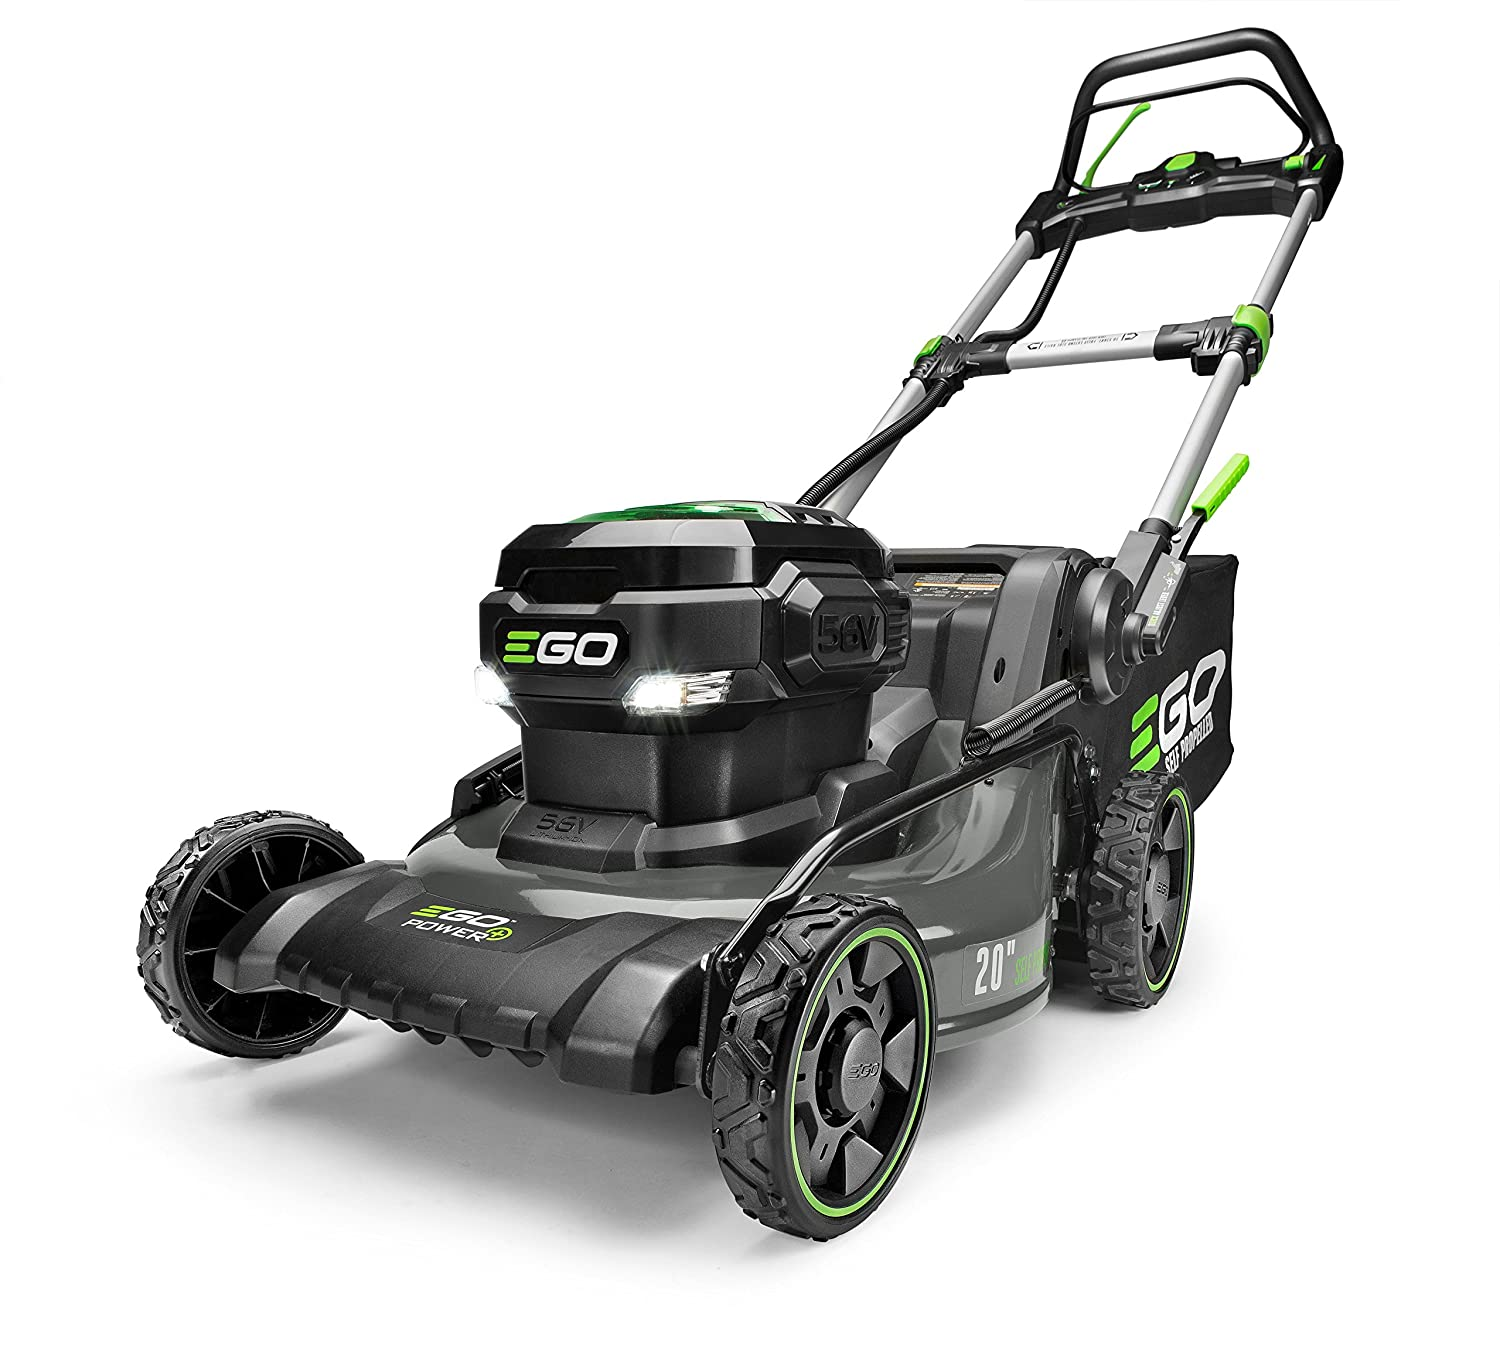 df5a64e8f EGO Power+ LM2020SP 20-Inch 56-Volt Lithium-ion Brushless Steel Deck Walk  Behind Self-Propelled Lawn Mower Battery and Charger Not Included, 56 V,  Green